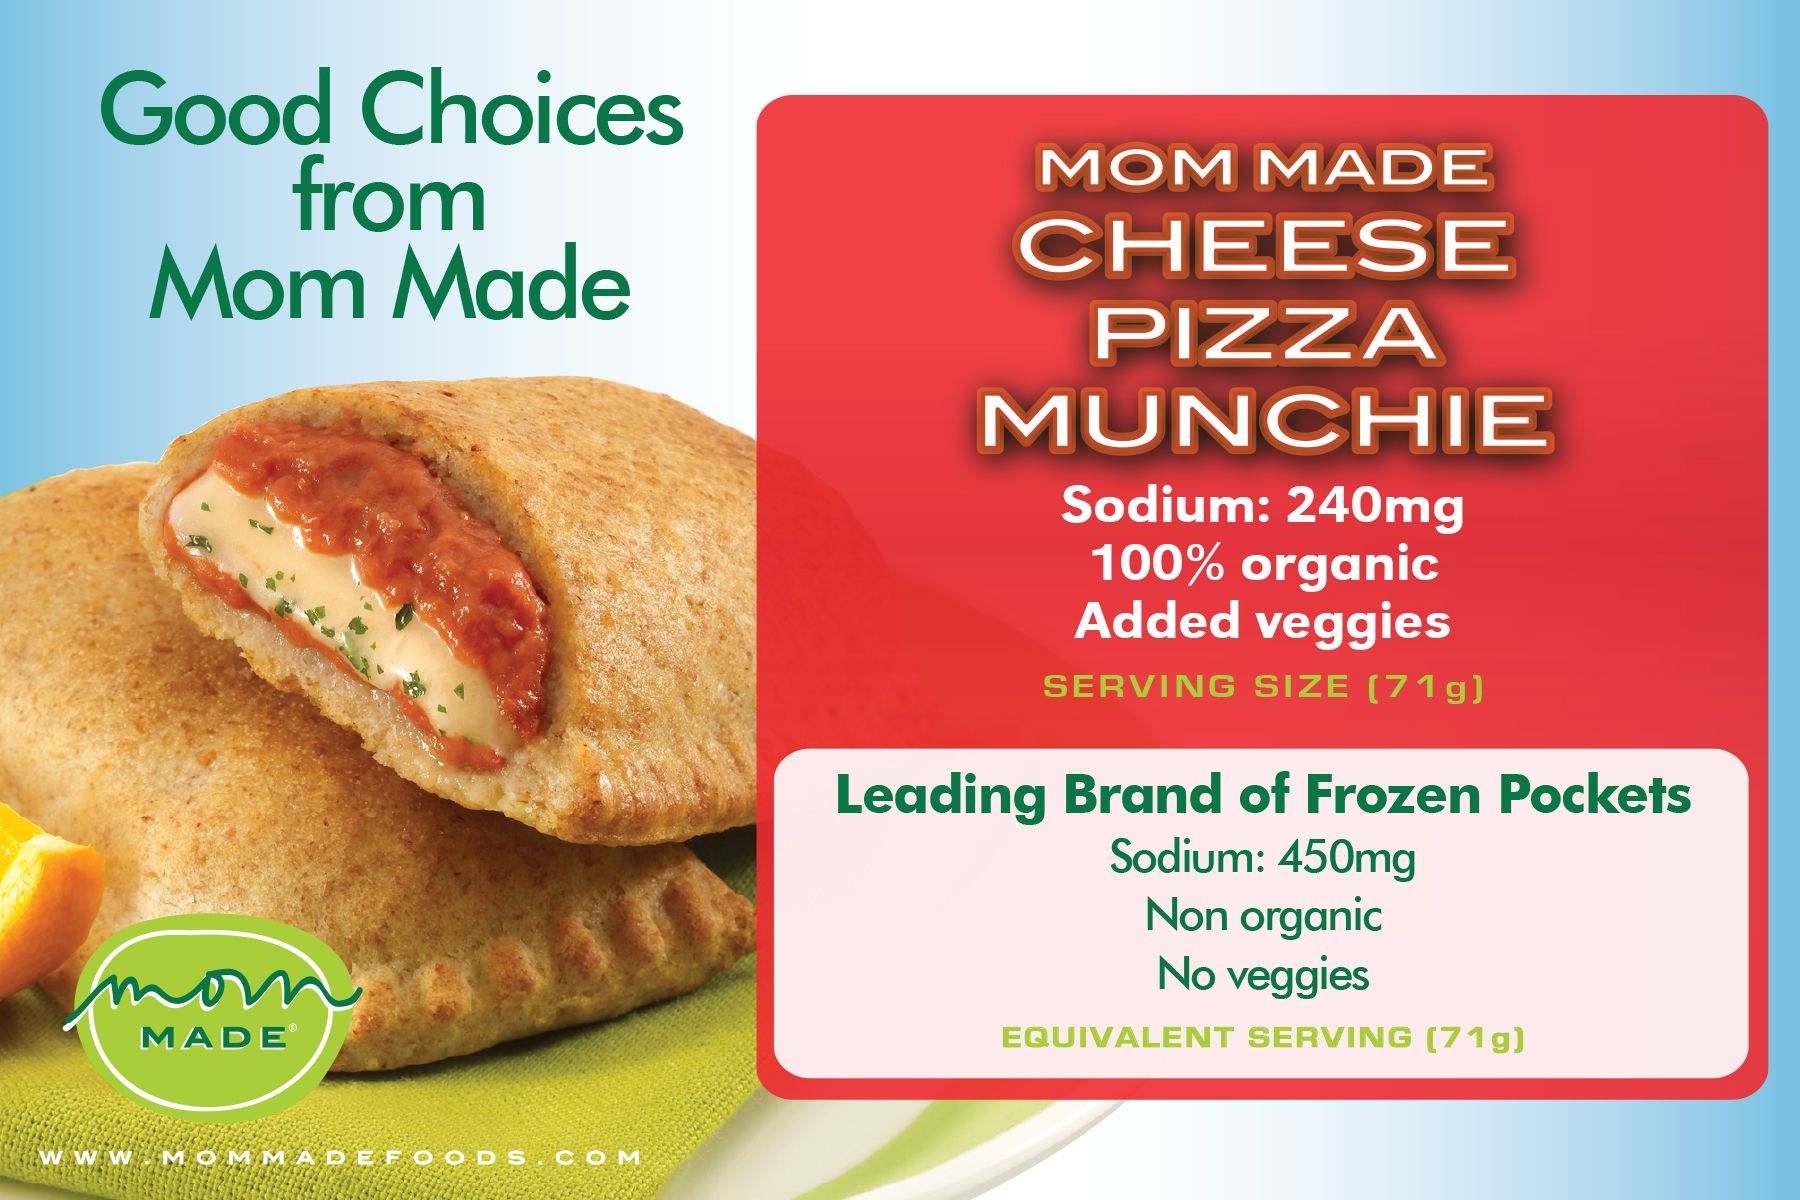 mom made cheese pizza munchie compared to a frozen pocket family meals food healthy recipes pinterest